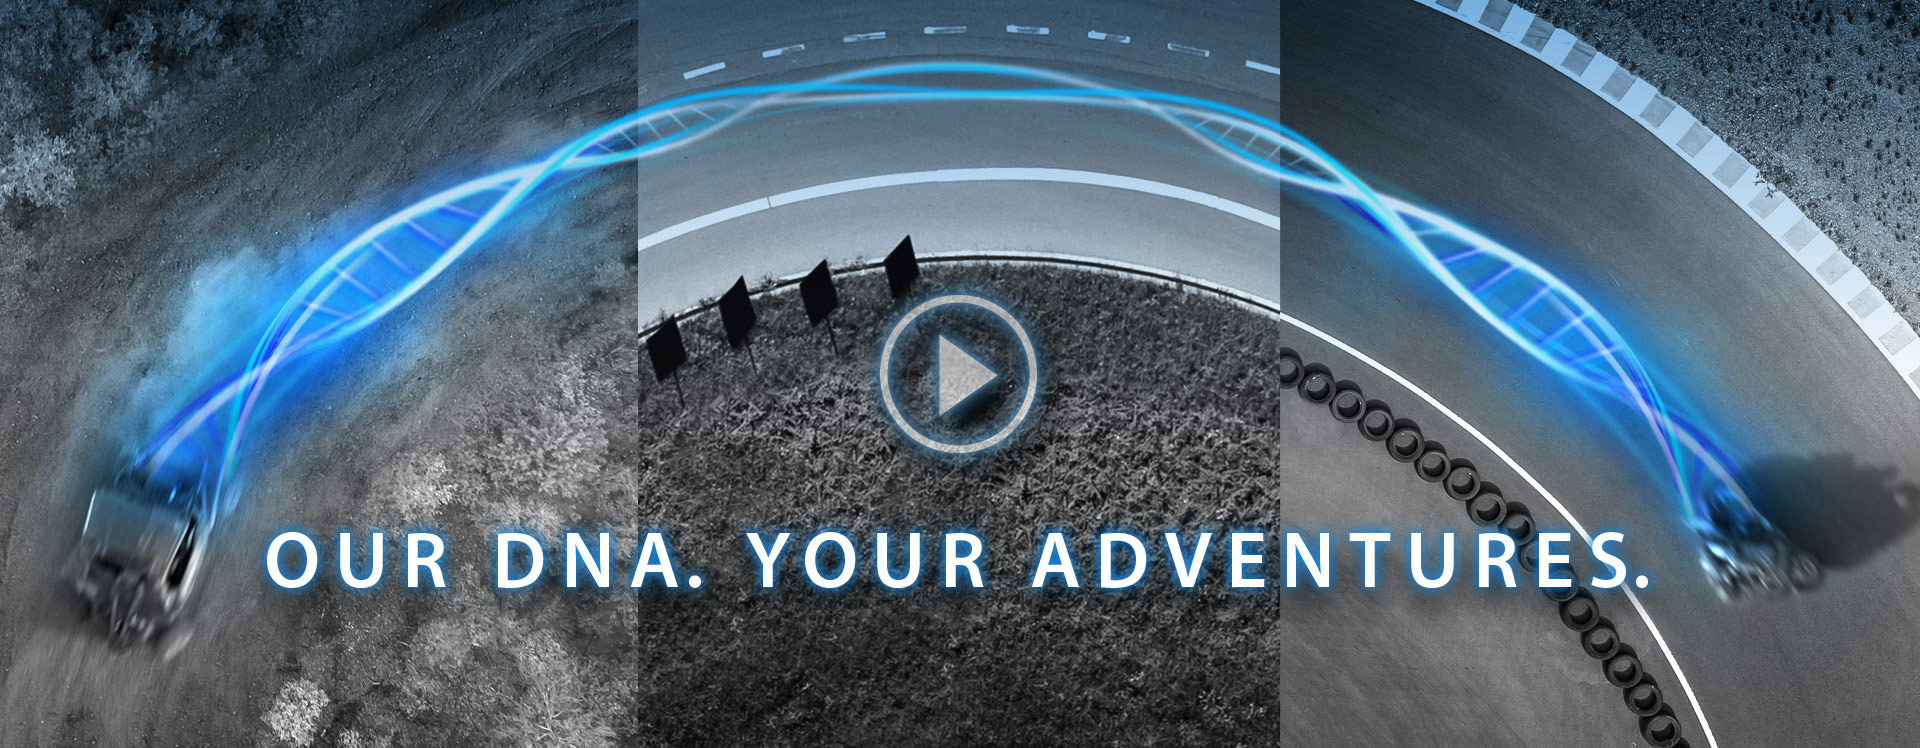 Our DNA. Your Adventures.